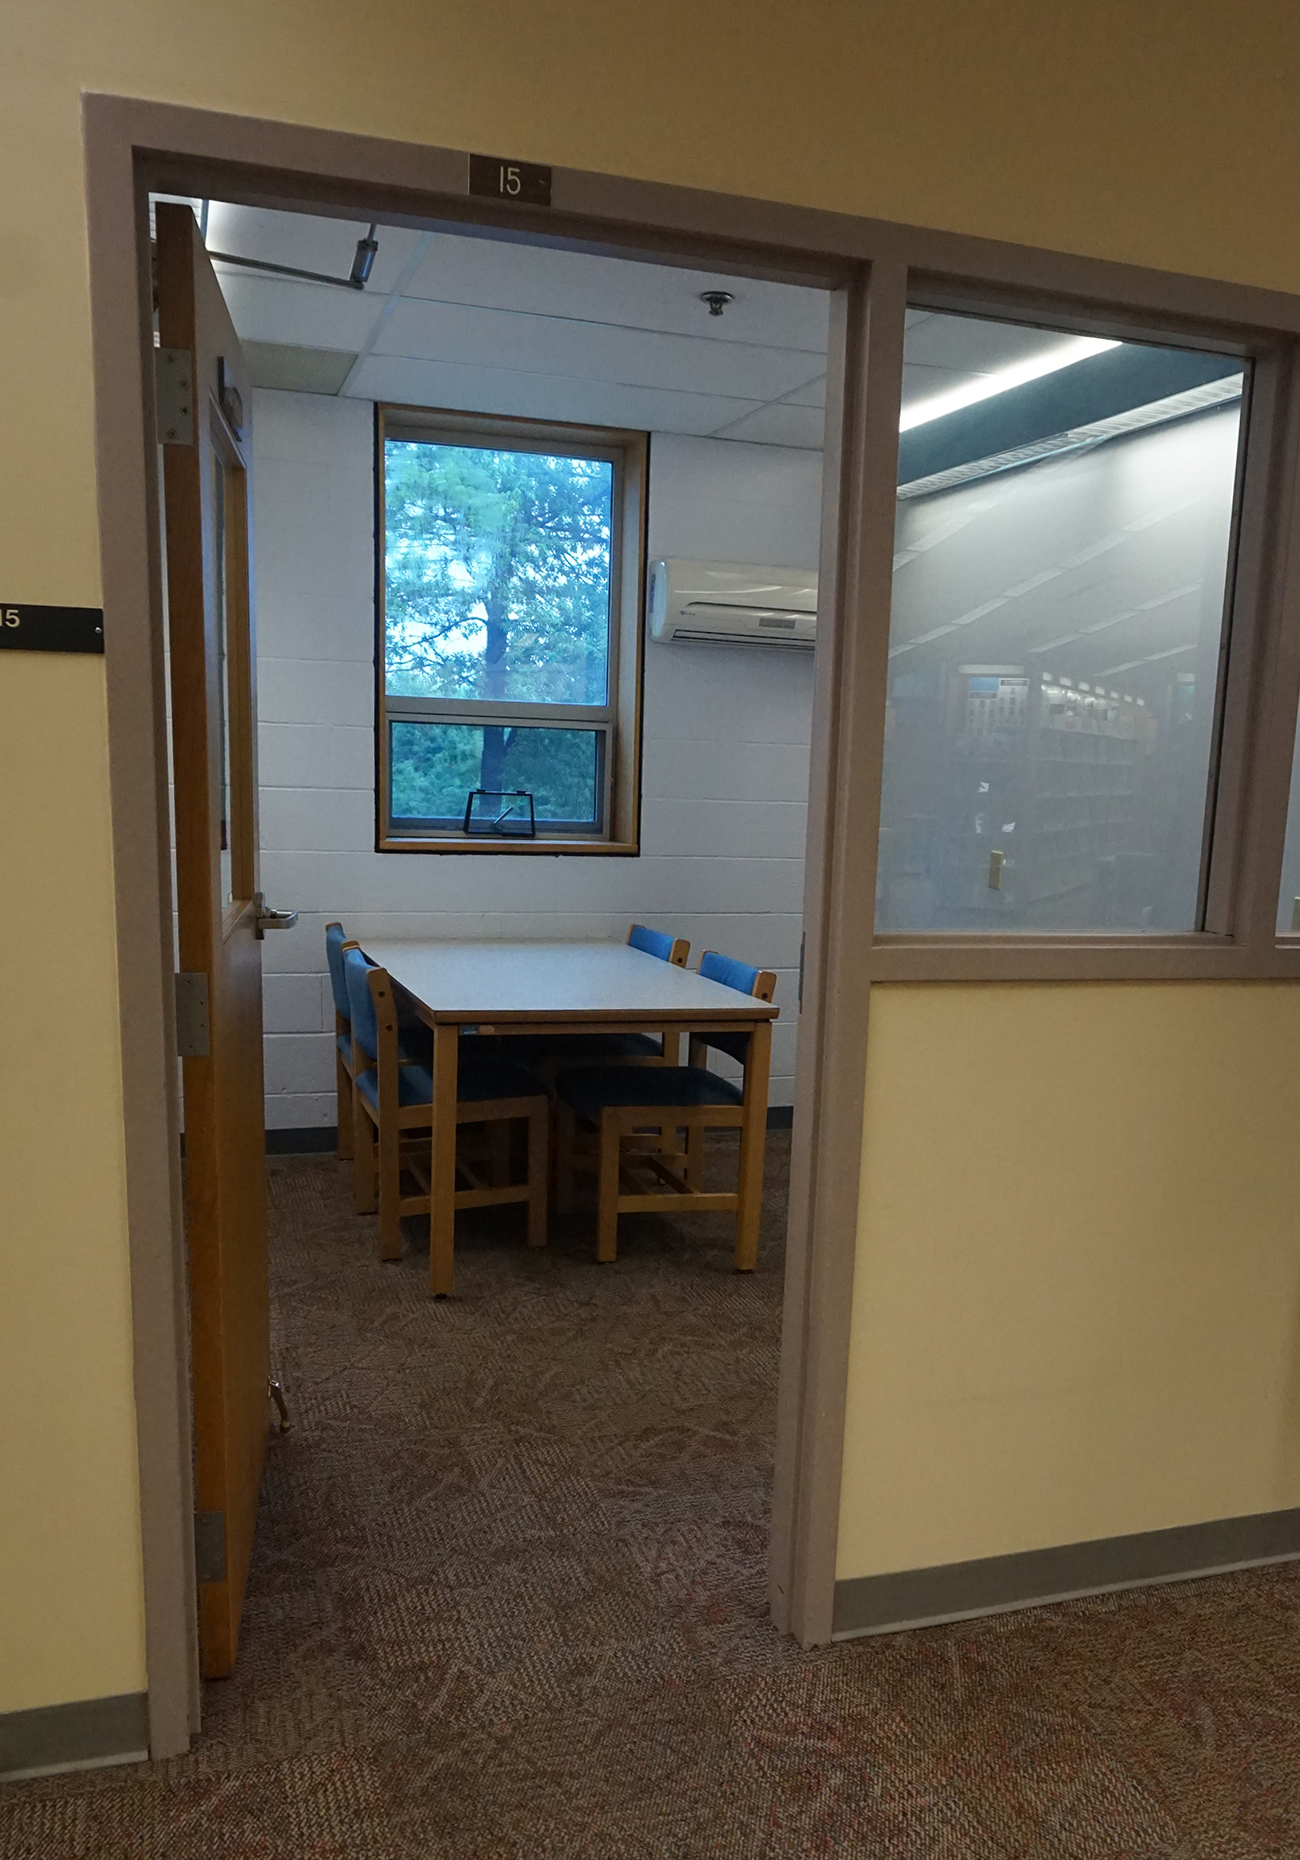 Entrance into a small study room with four chairs and a table